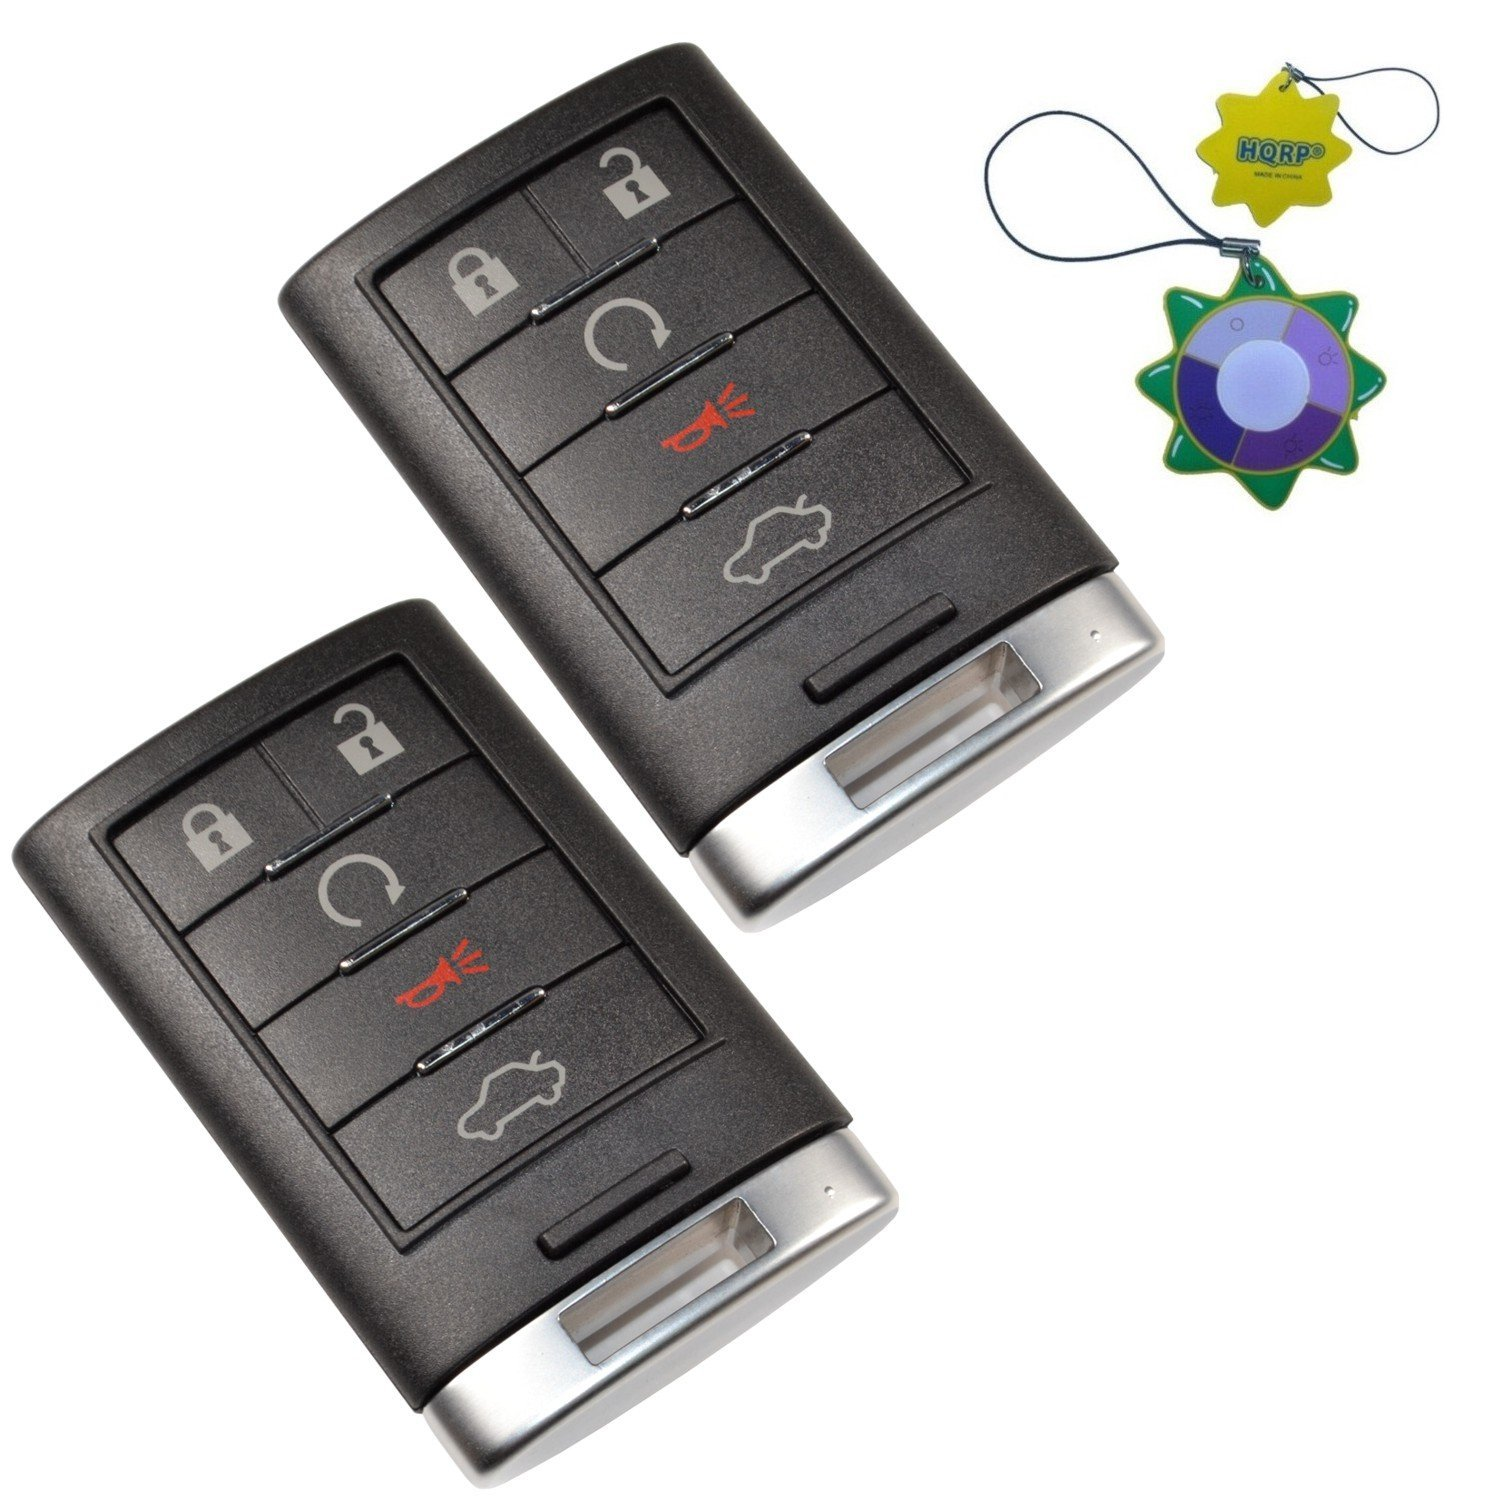 2 Pack 4 Buttons Car Key Fob Replacement Remote Fob Key Shell for Chevrolet Camaro 2010 2011 2012 2013 2014